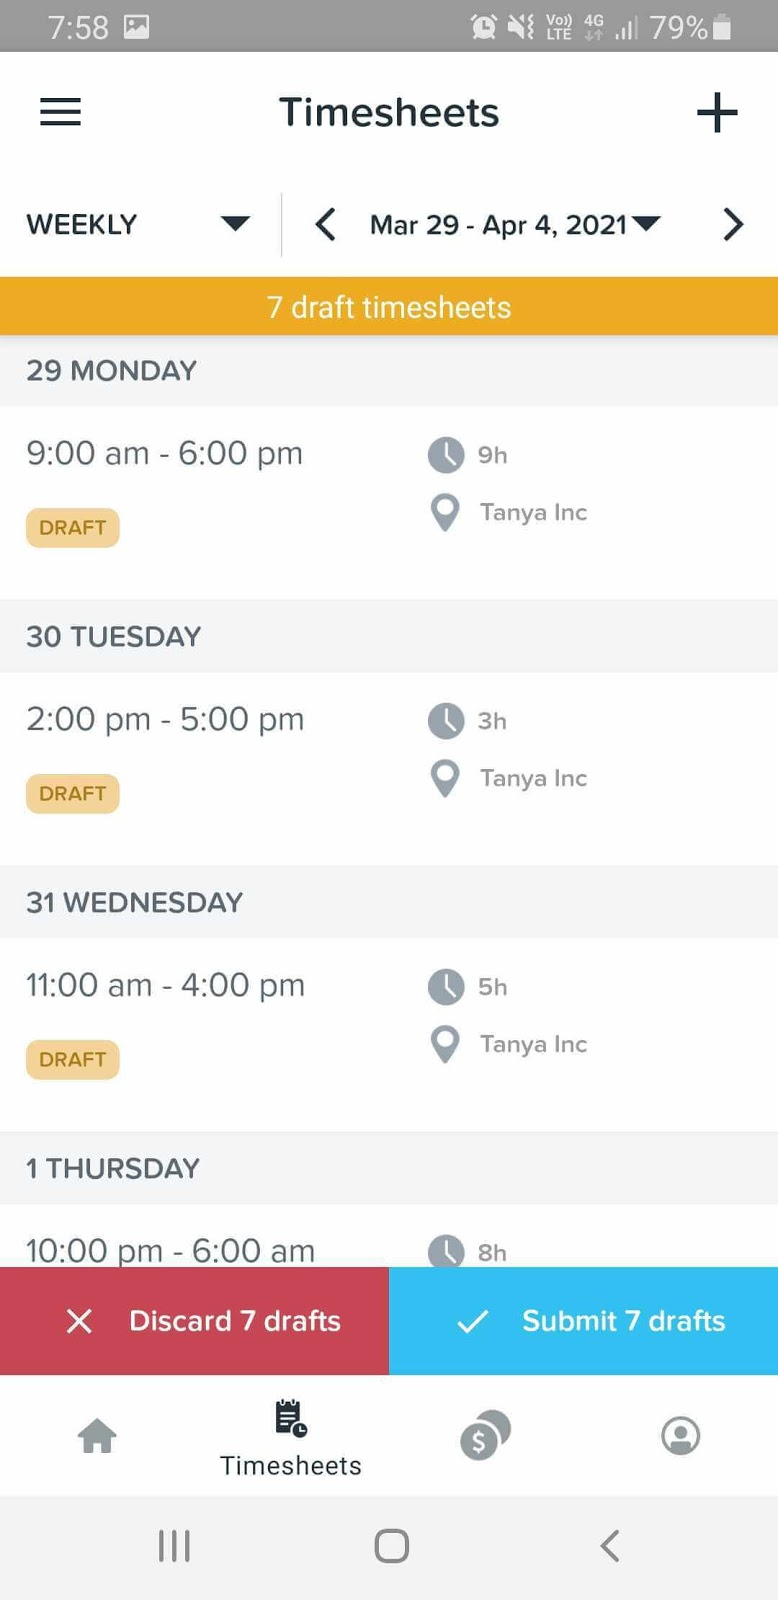 Screenshot of KeyPay's mobile app WorkZone displaying seven draft timesheets for employees to review.